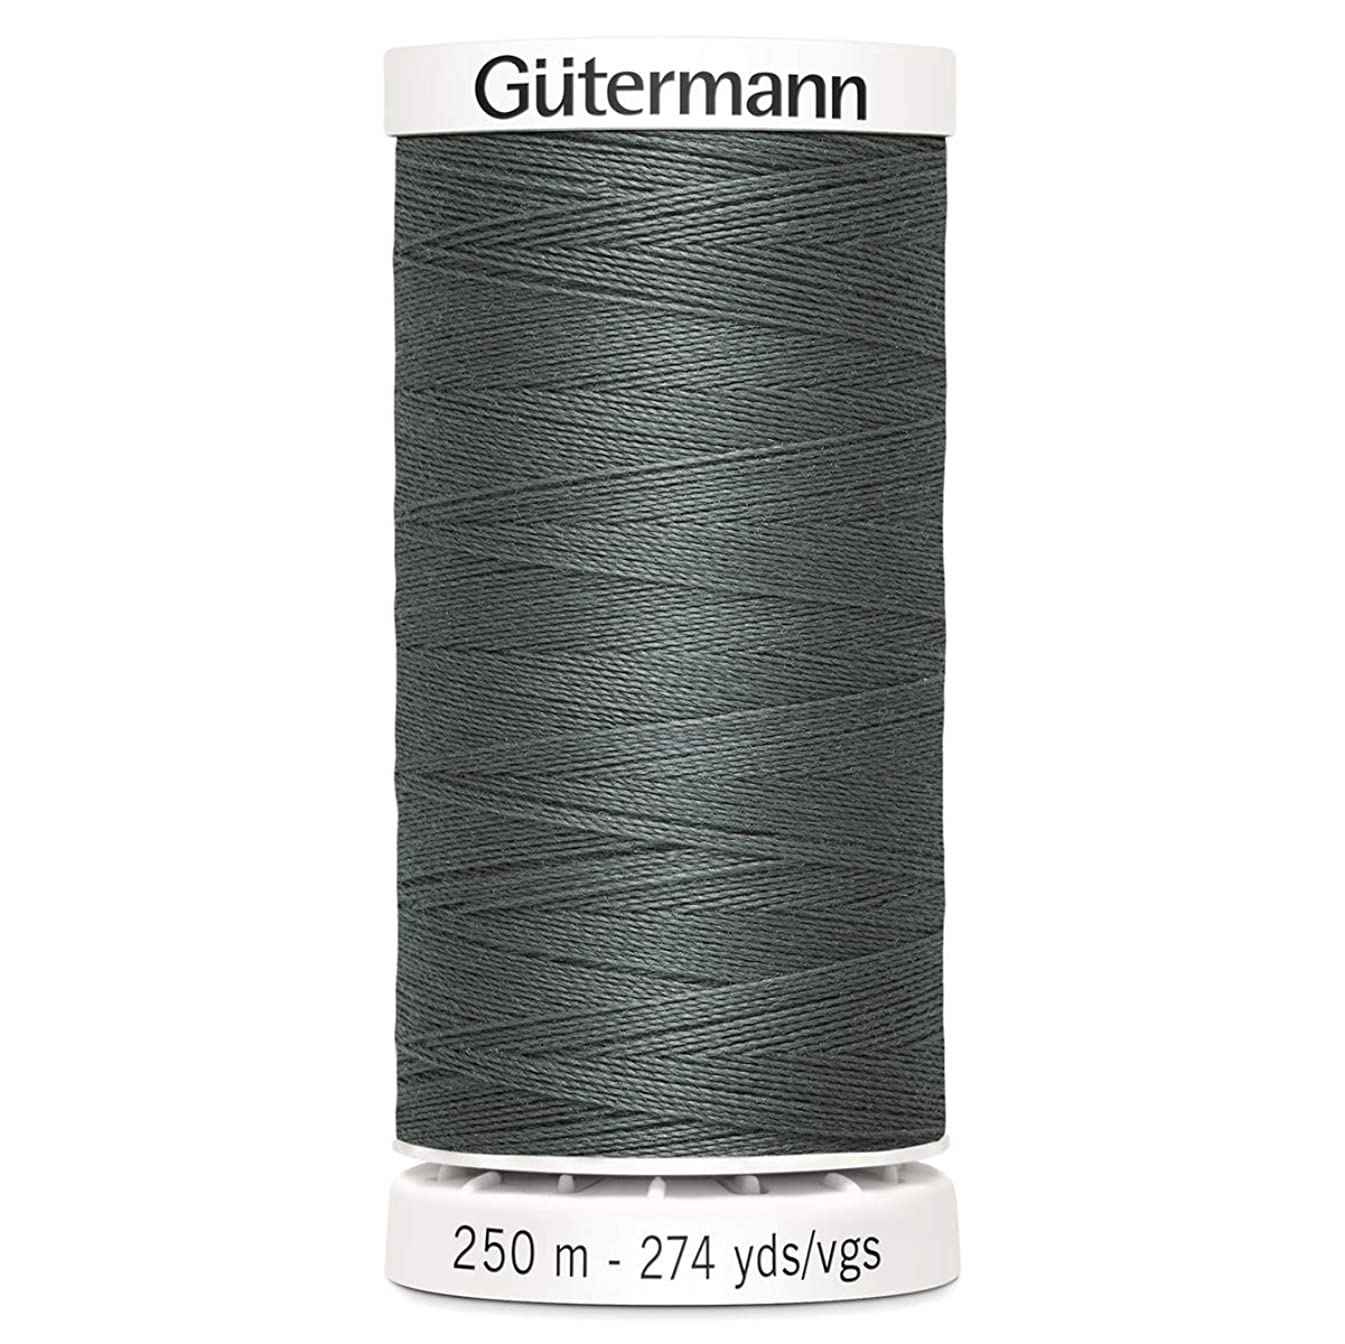 Gutermann Sew All Polyester Thread, 250mtr, Dovetail Grey (0701), 5.5 x 2.7 x 2.7 cm